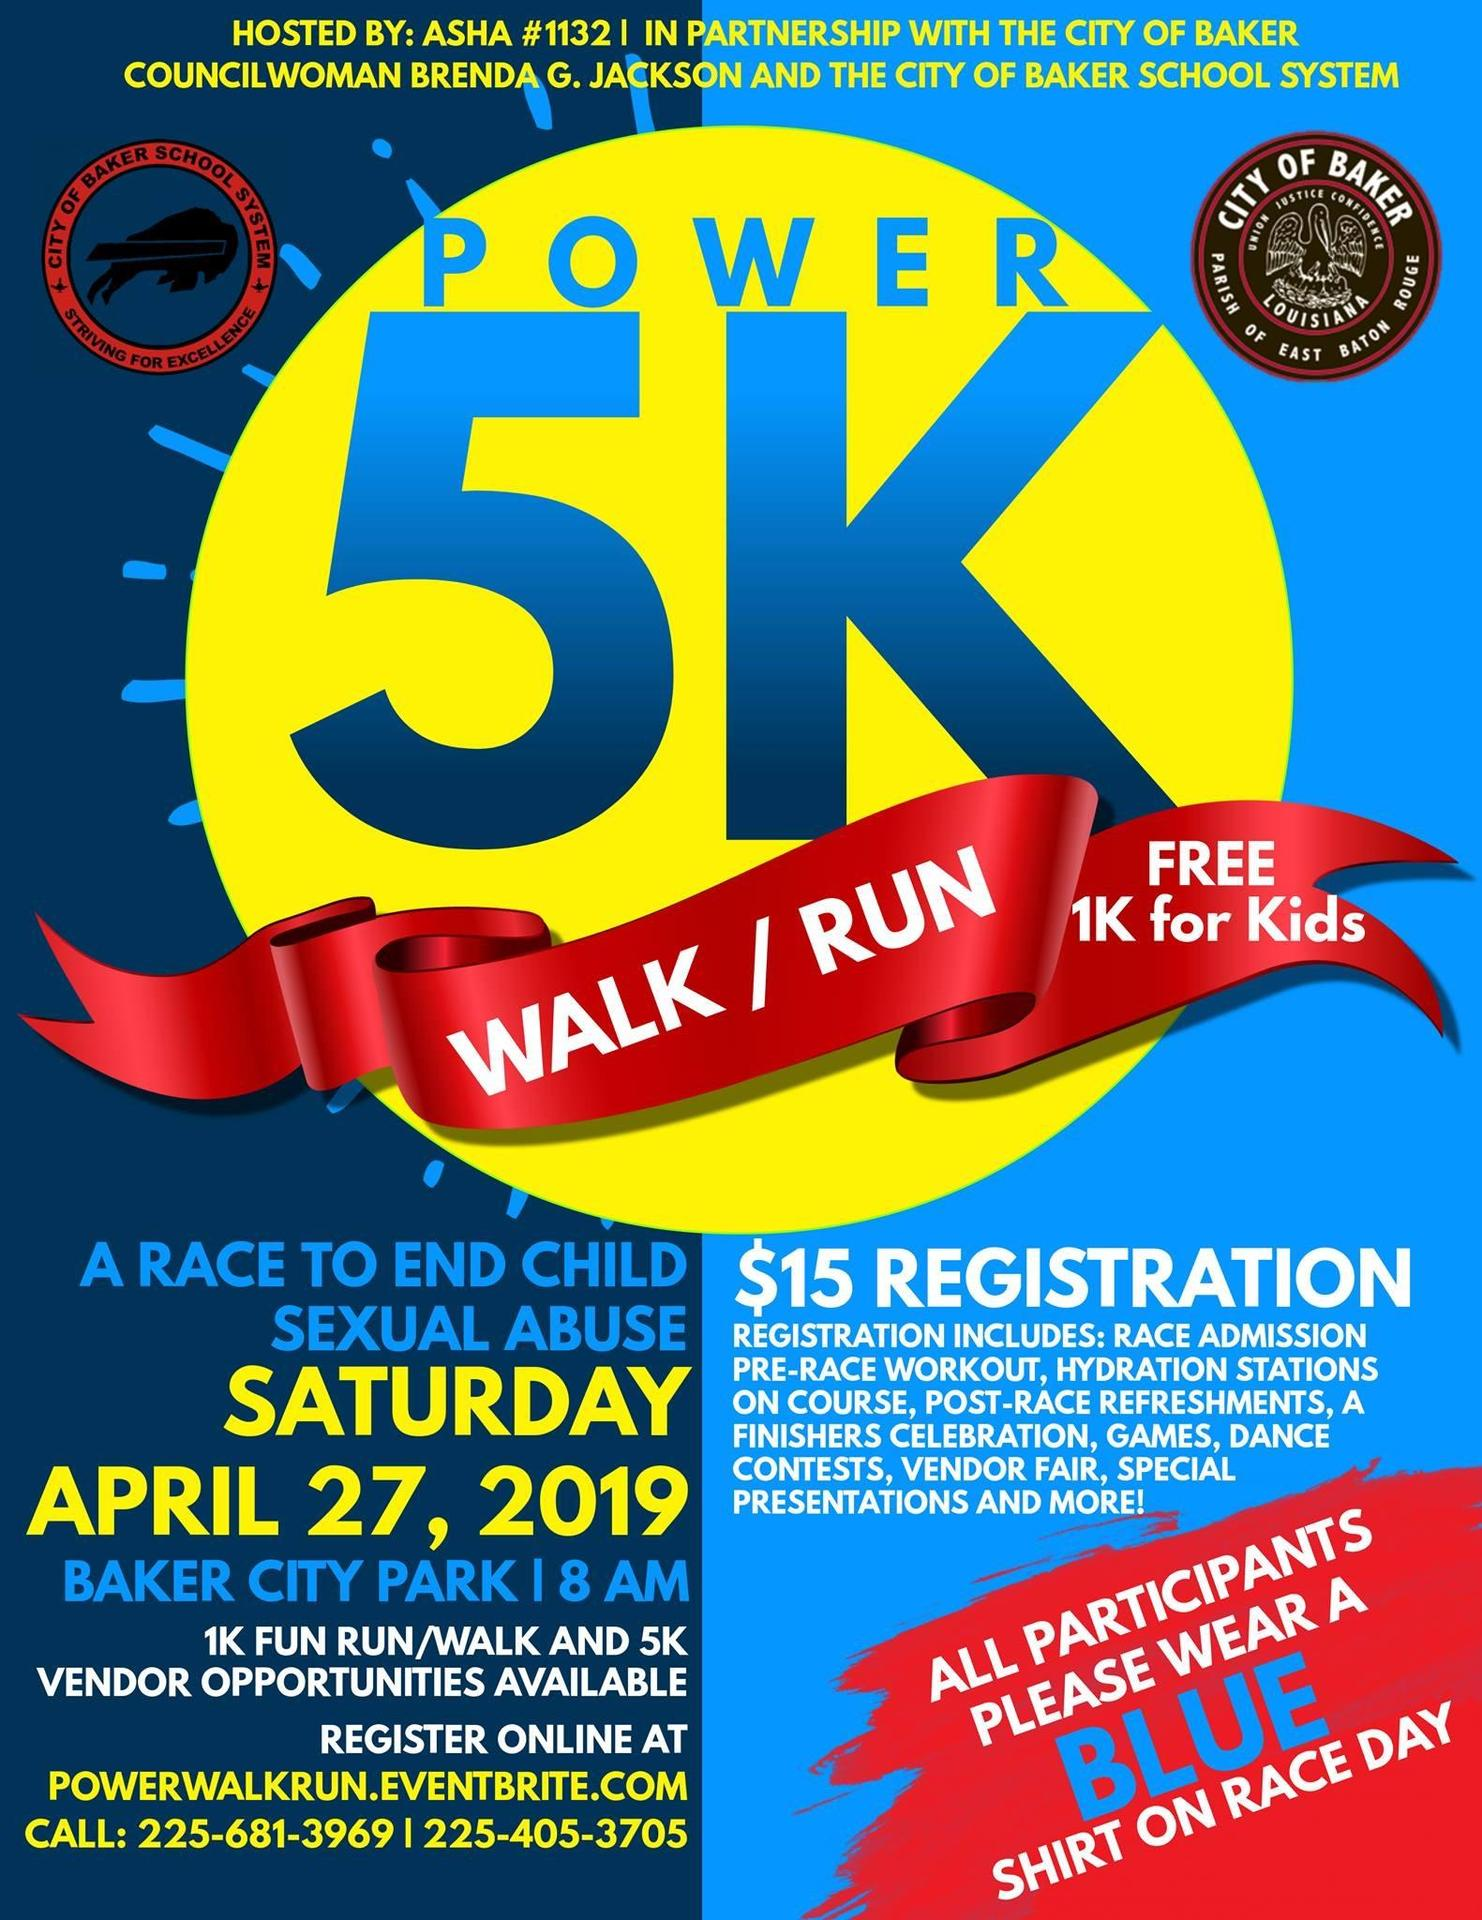 a graphic promoting the 2019 Power 5K Walk/Run